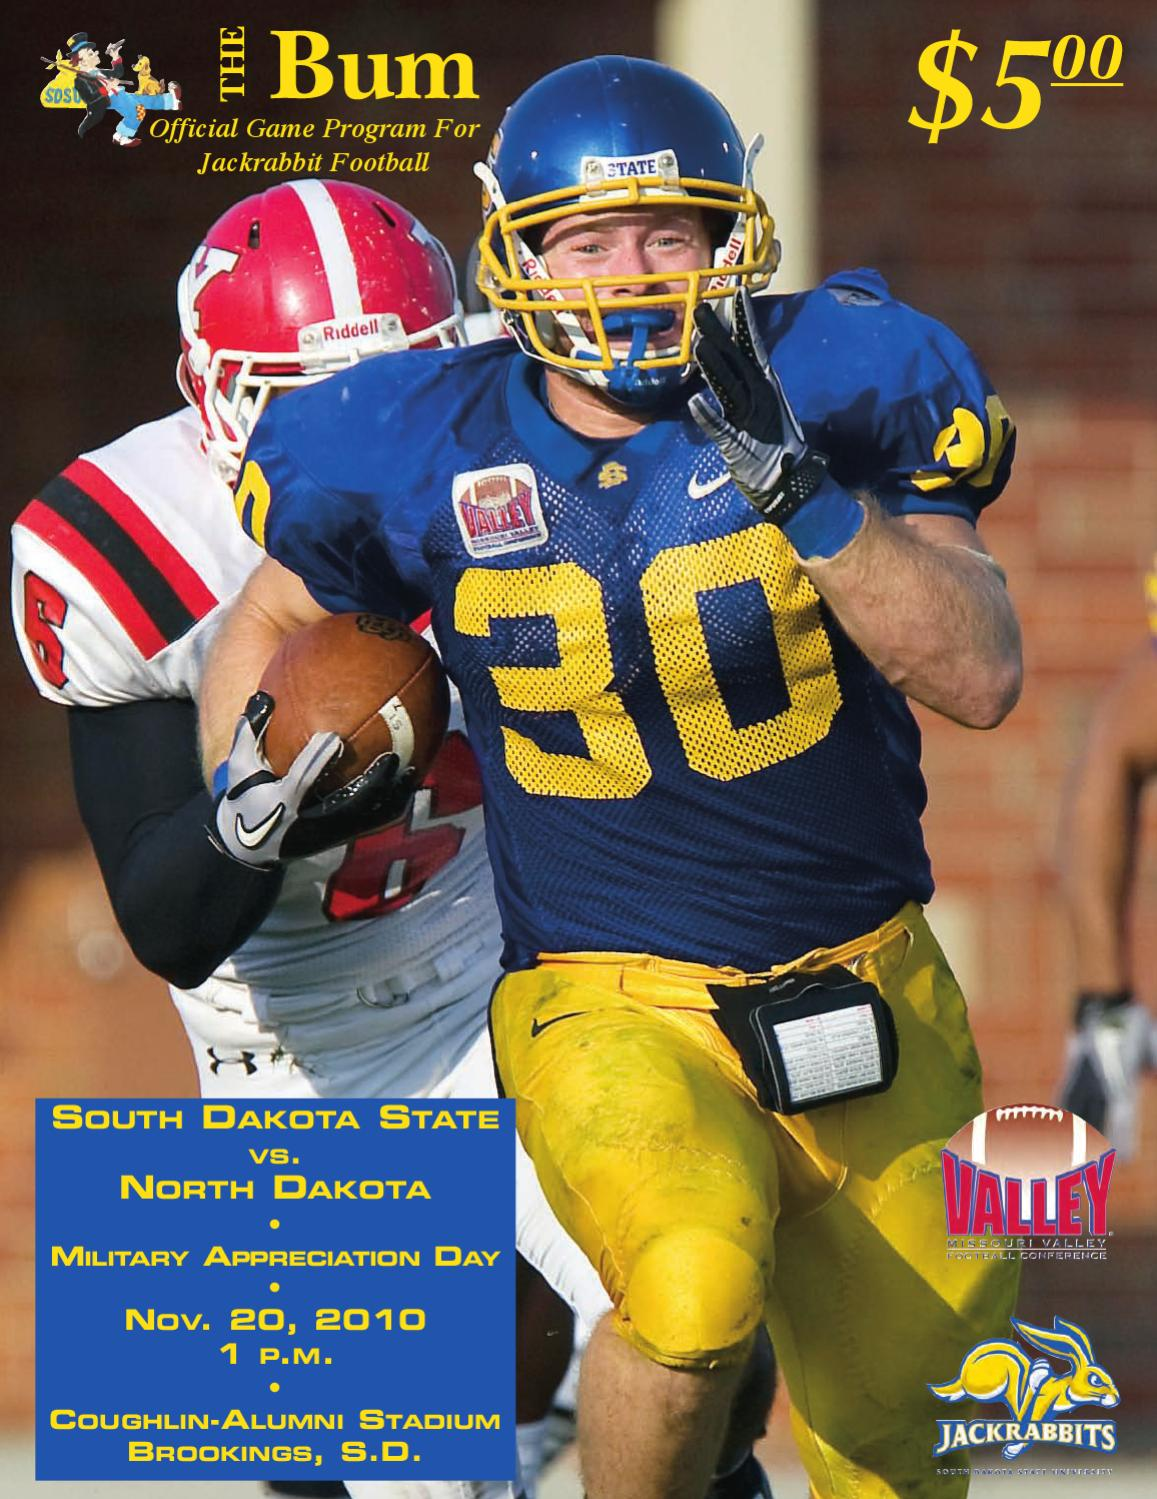 south dakota state football program 11 20 2010 by south dakota